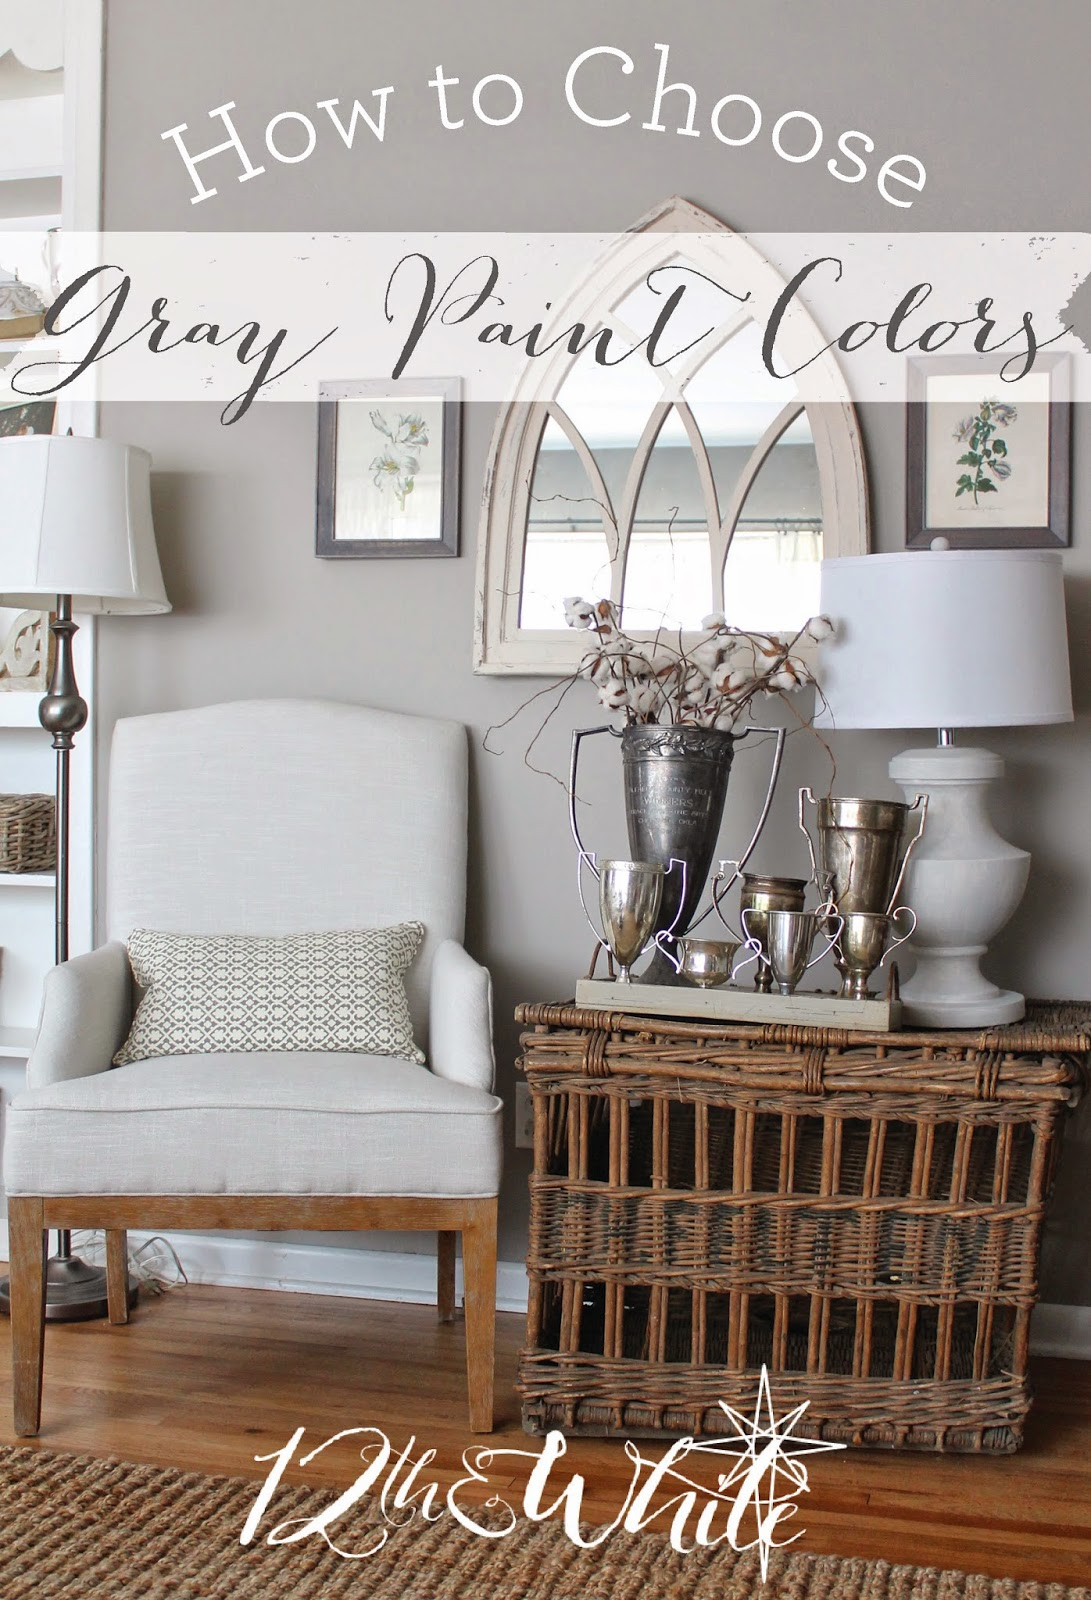 we have five different gray colors in our home - Gray Home 2015